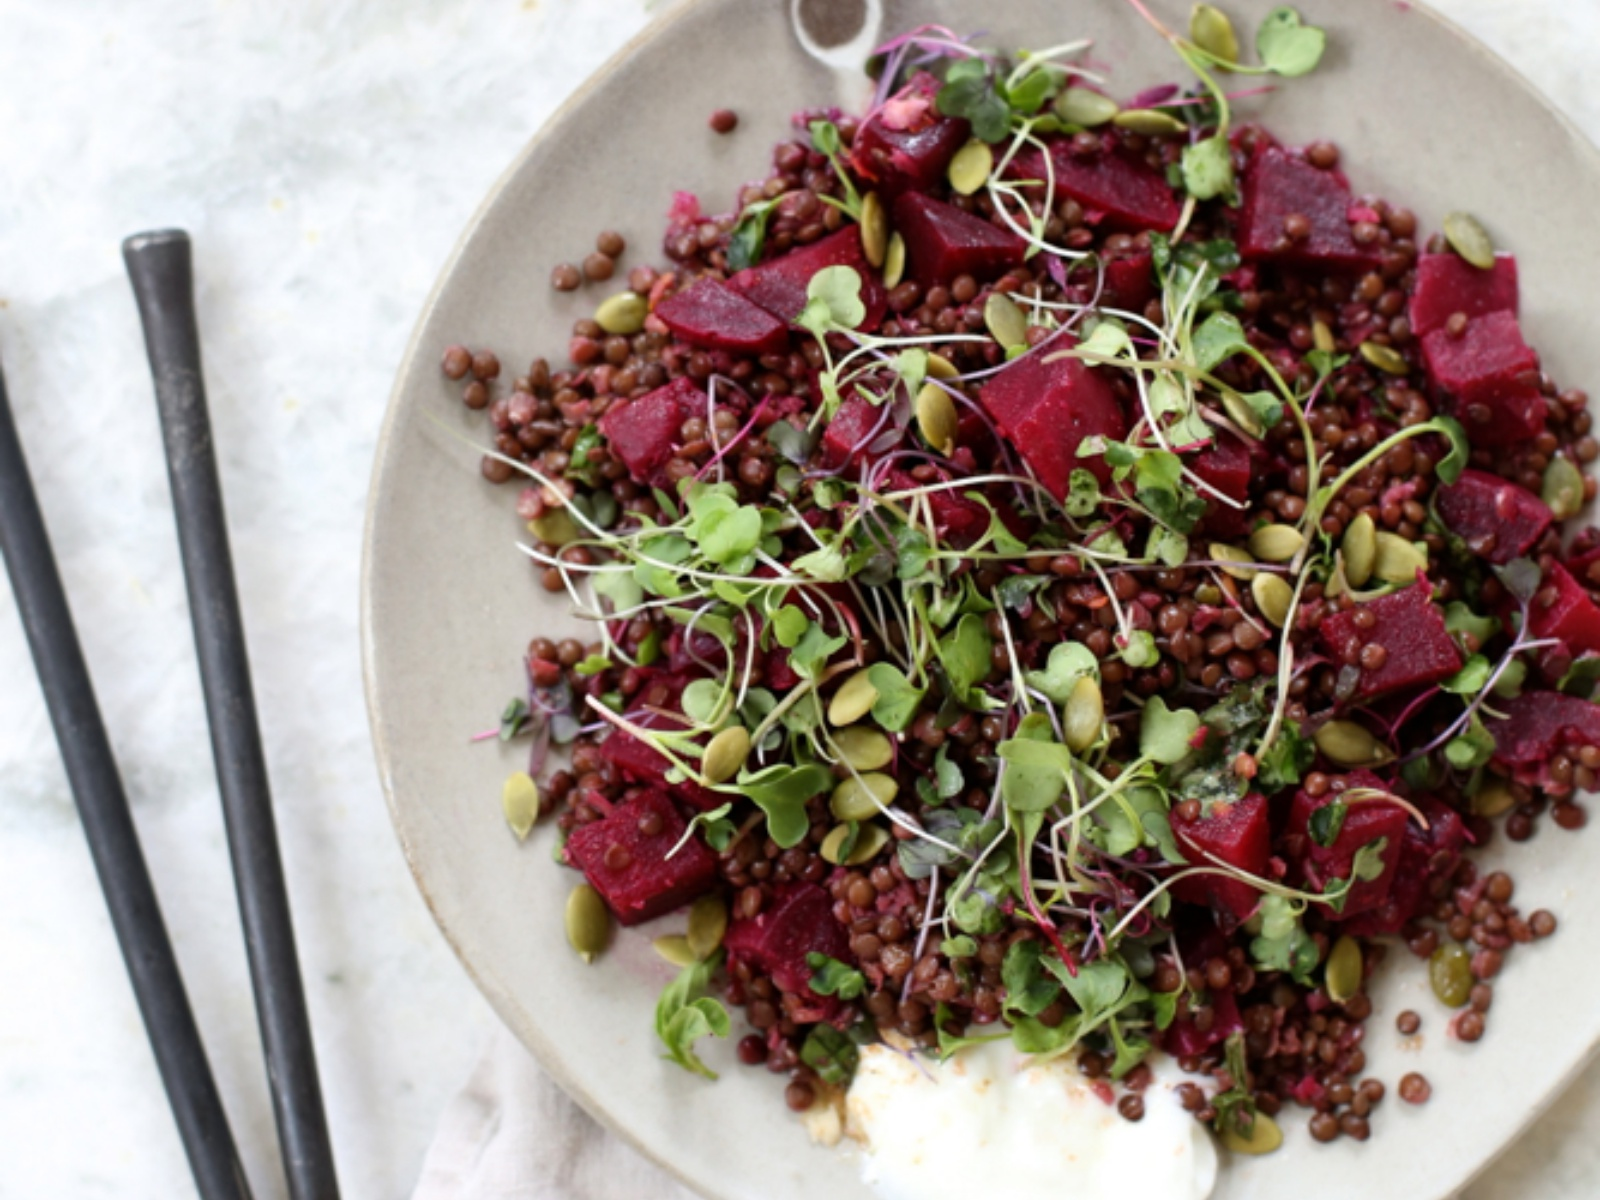 Spring Beluga Lentil And Beet Salad With Coriander Vinaigrette Vegan One Green Planet